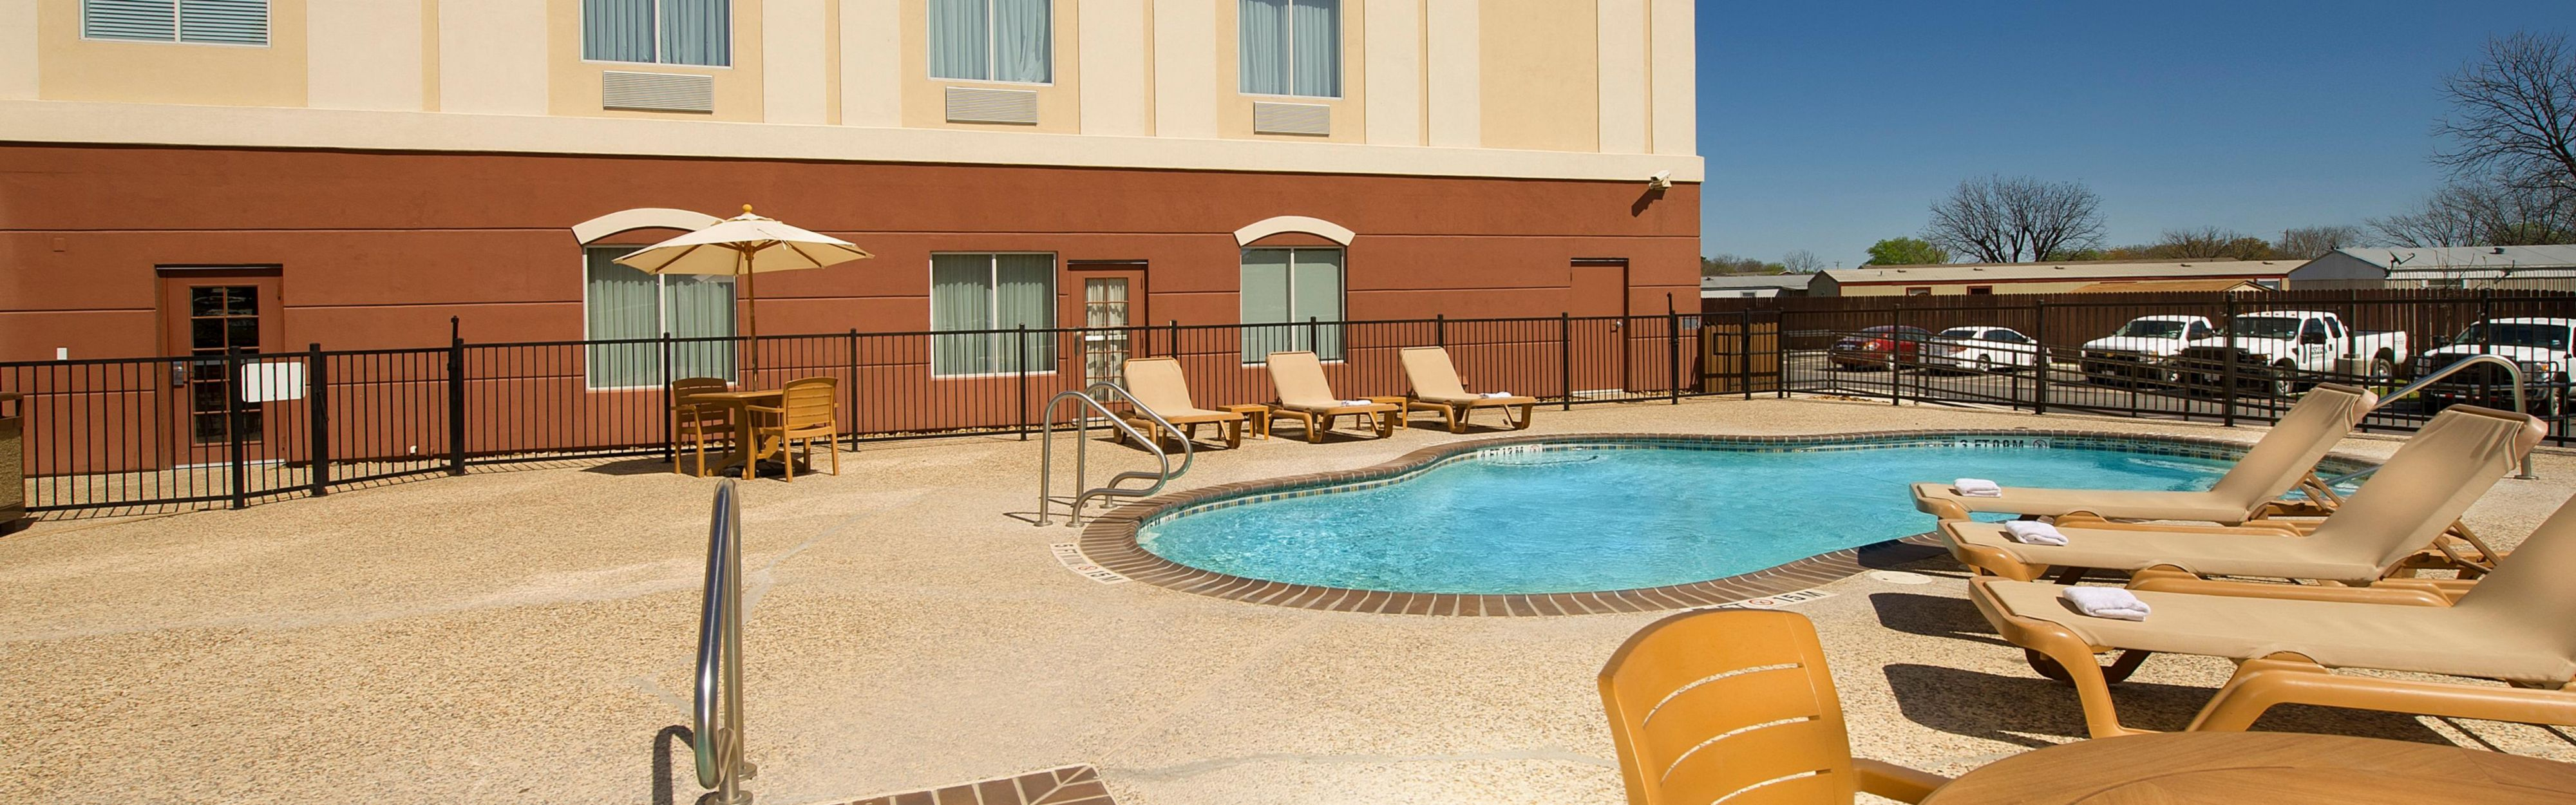 Holiday Inn Express & Suites Uvalde image 2